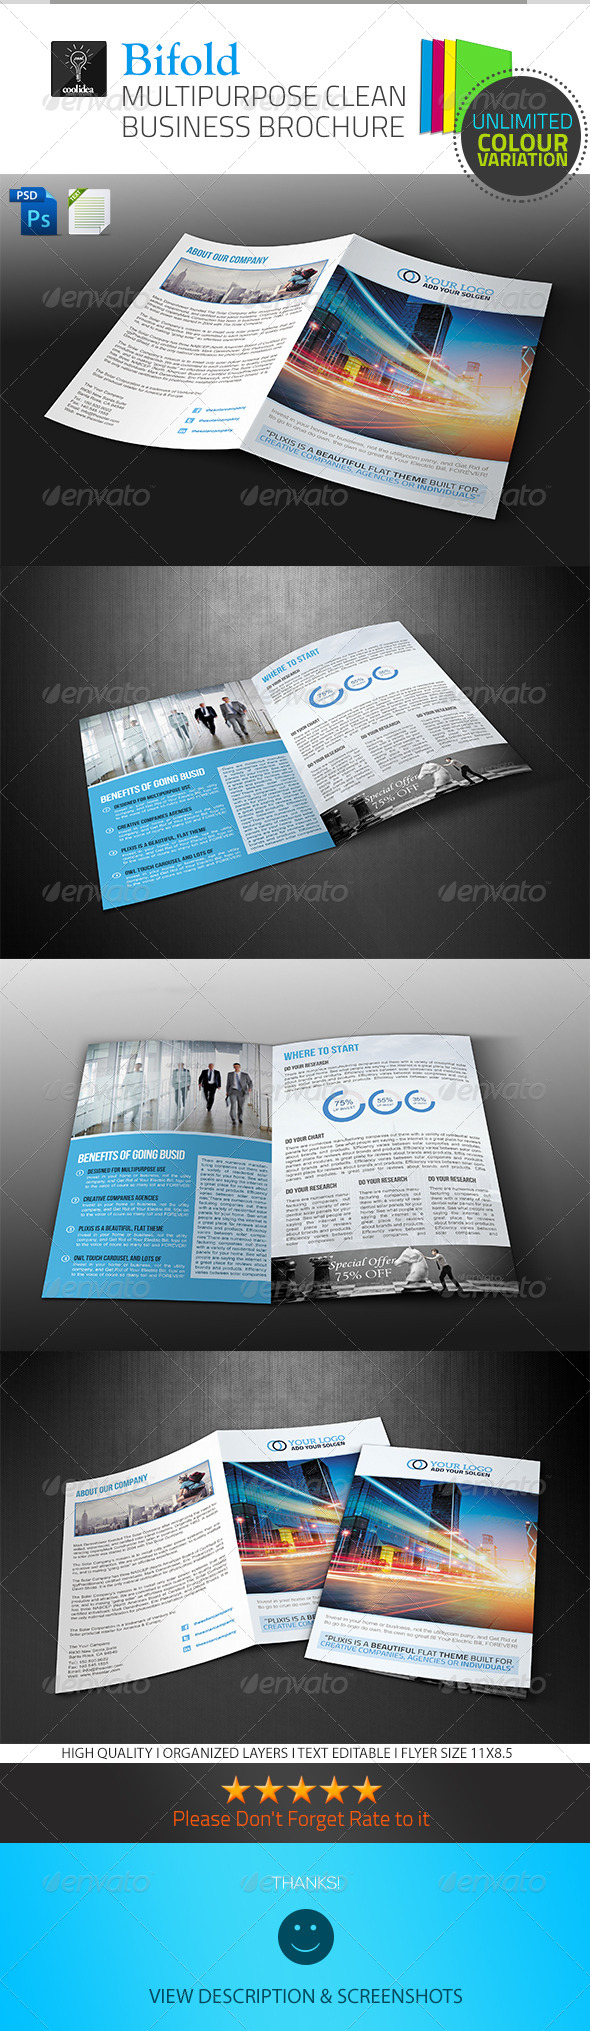 A4 Business Brochure/ Bifold - Corporate Brochures